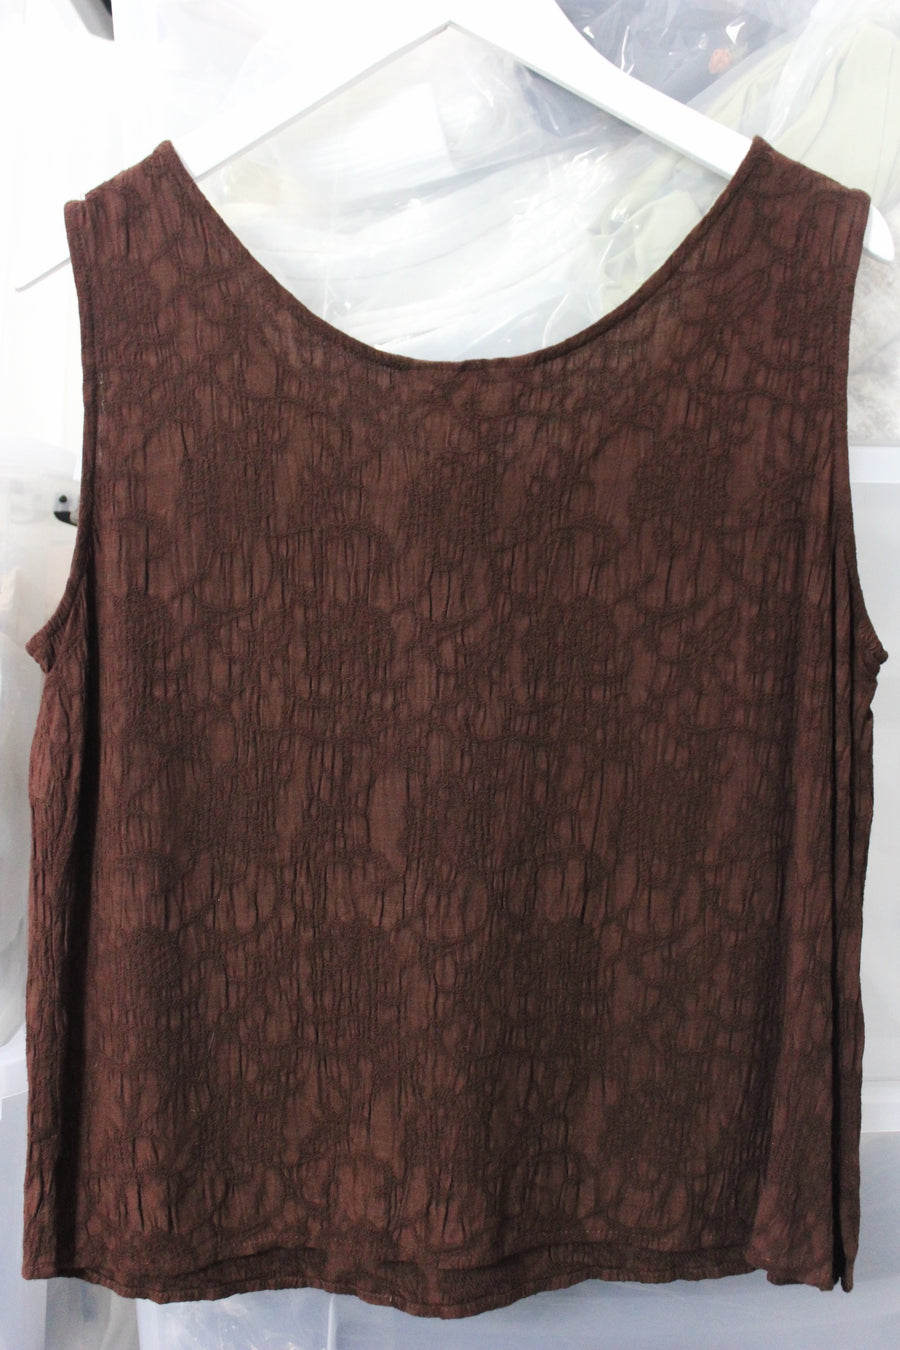 BETTY EMBROIDERED VINTAGE TOP / BROWN